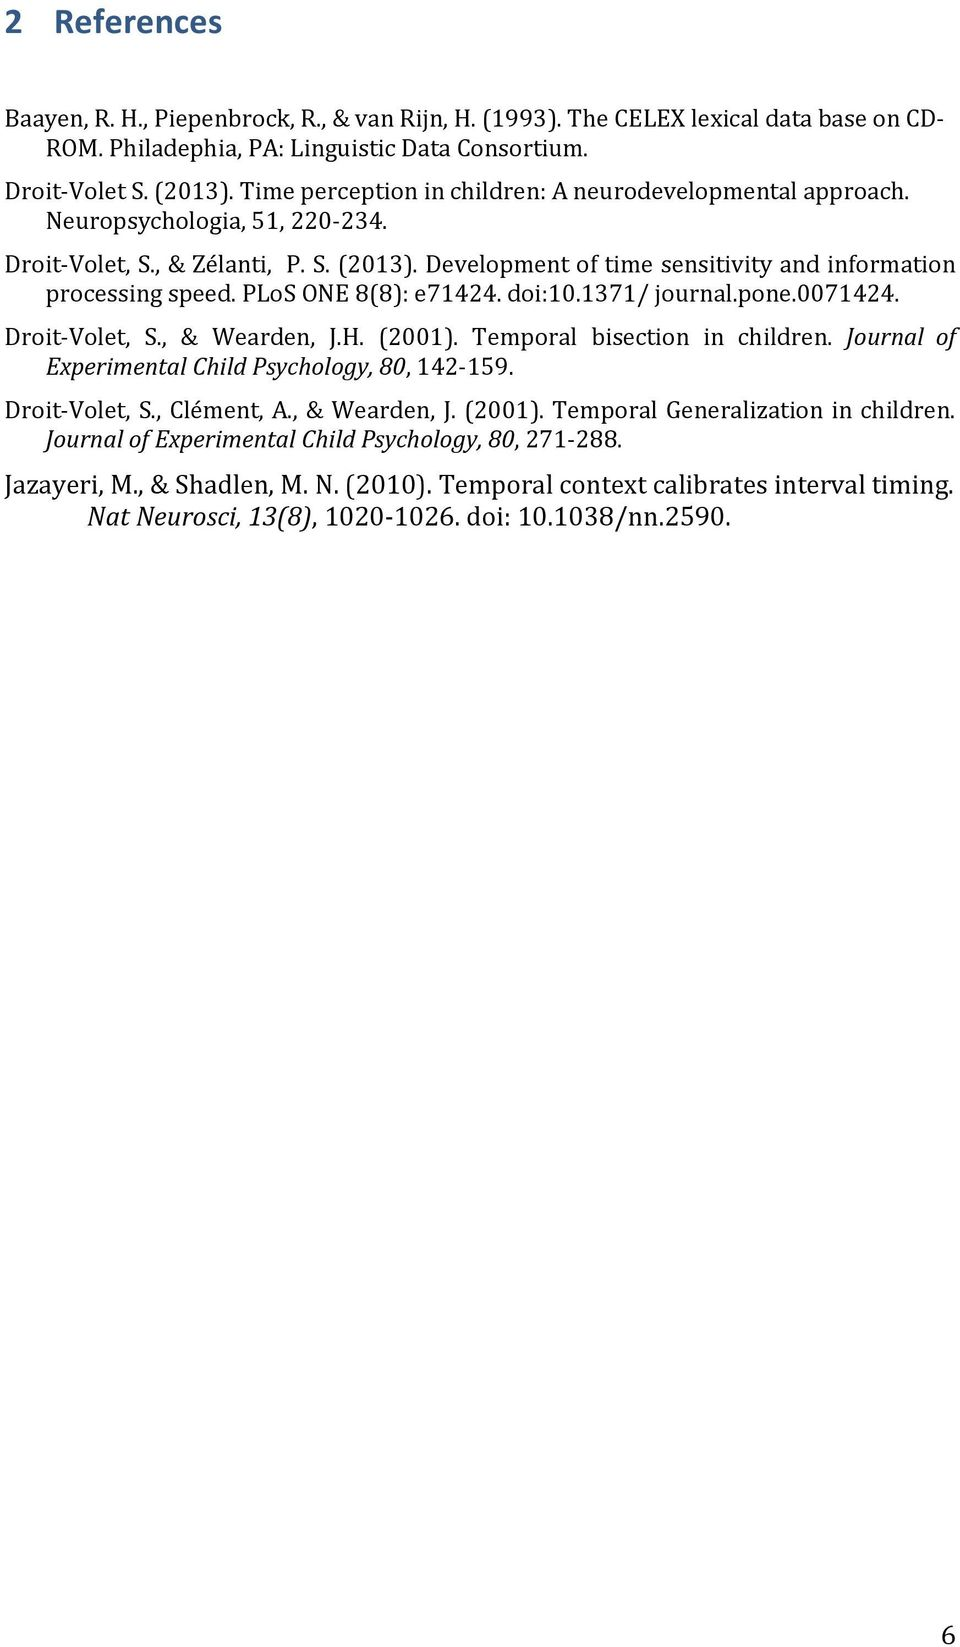 PLoS ONE 8(8): e71424. doi:10.1371/ journal.pone.0071424. Droit-Volet, S., & Wearden, J.H. (2001). Temporal bisection in children. Journal of Experimental Child Psychology, 80, 142-159.